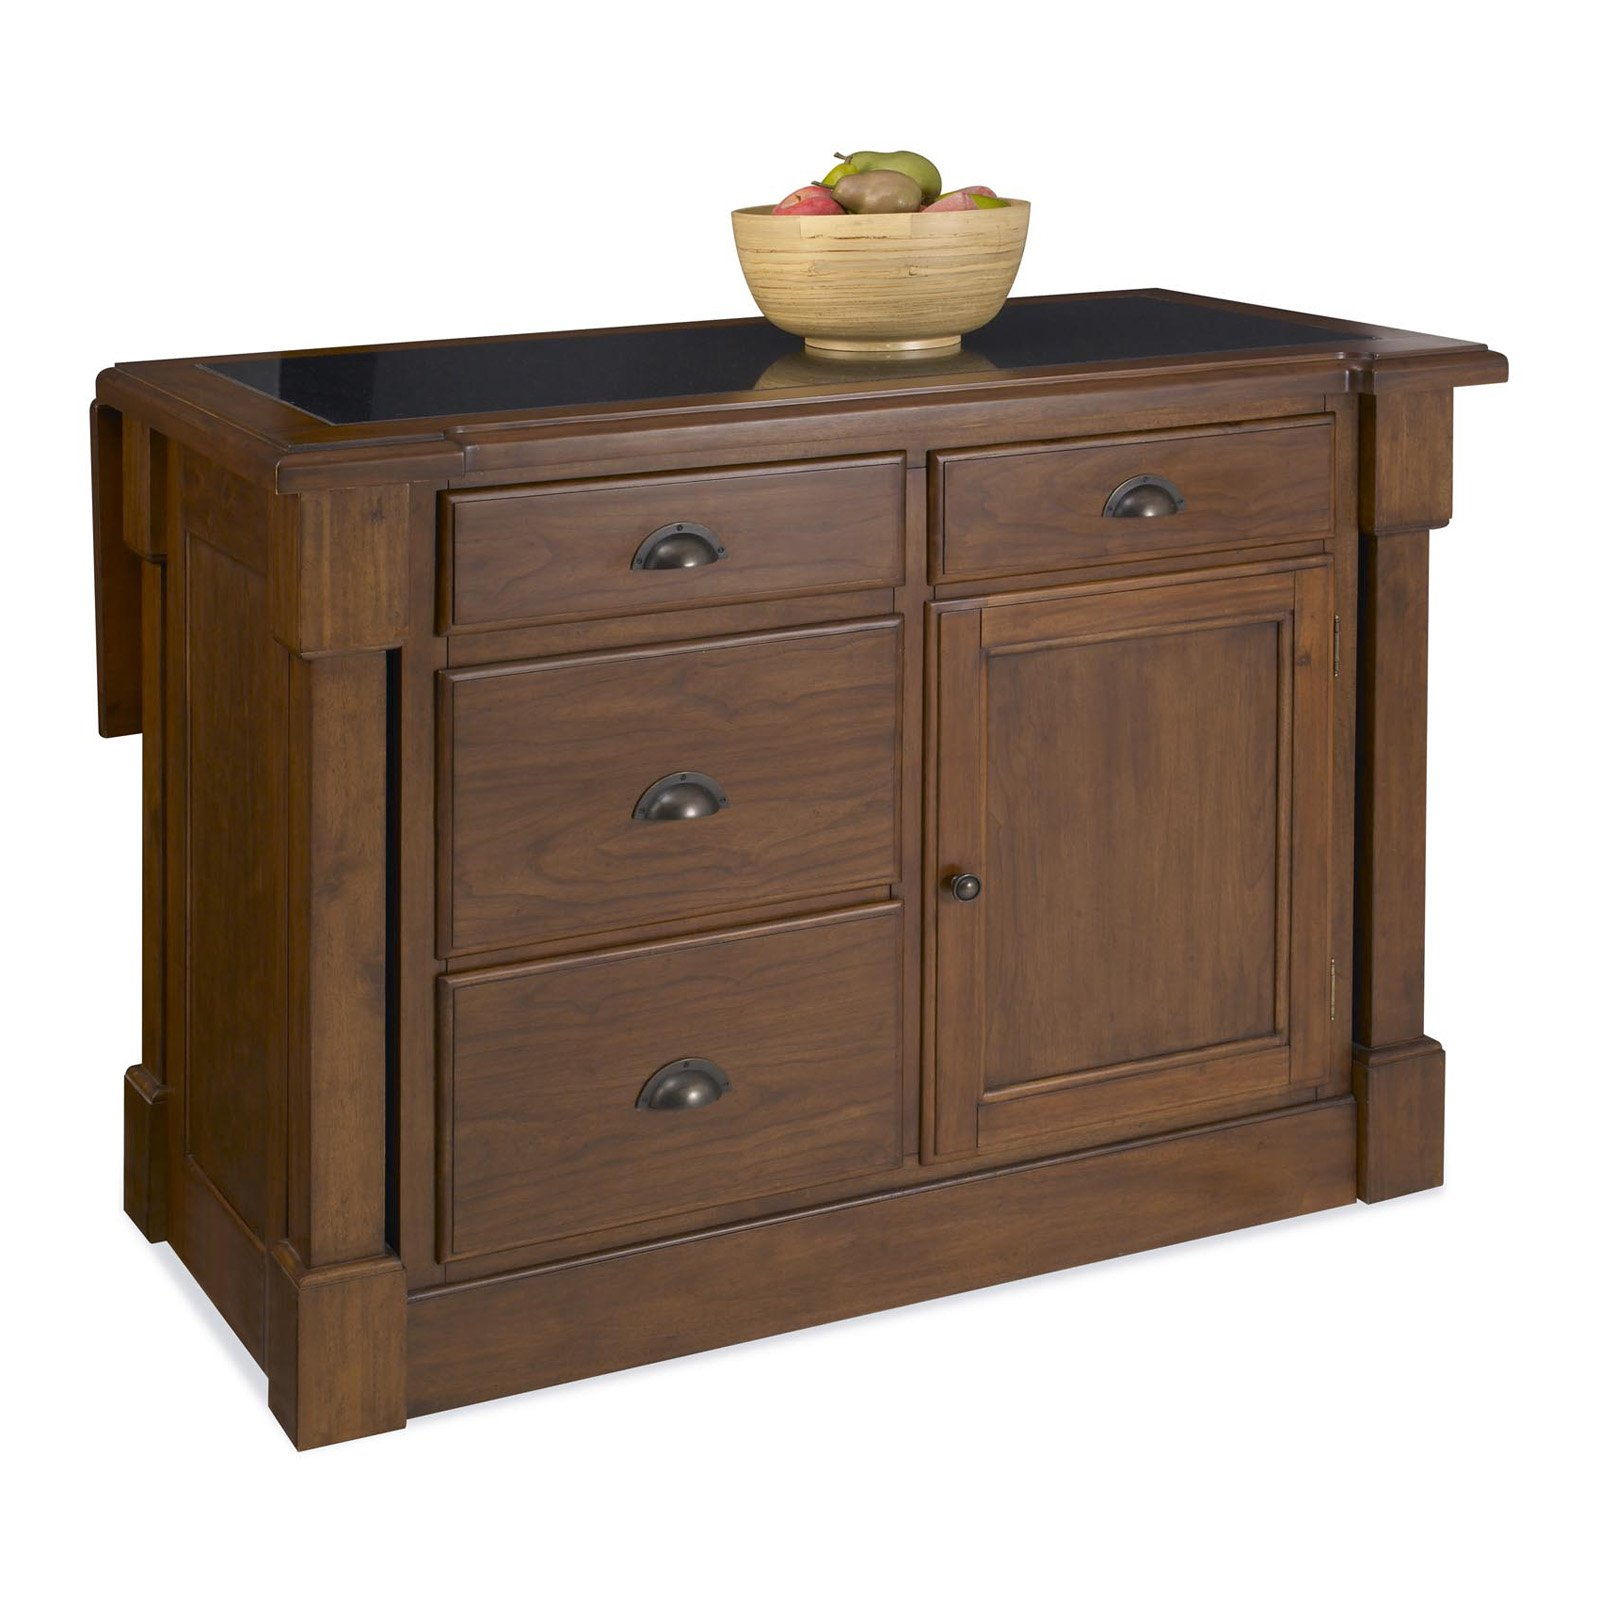 aspen kitchen island home styles aspen kitchen island with drop leaf 10190